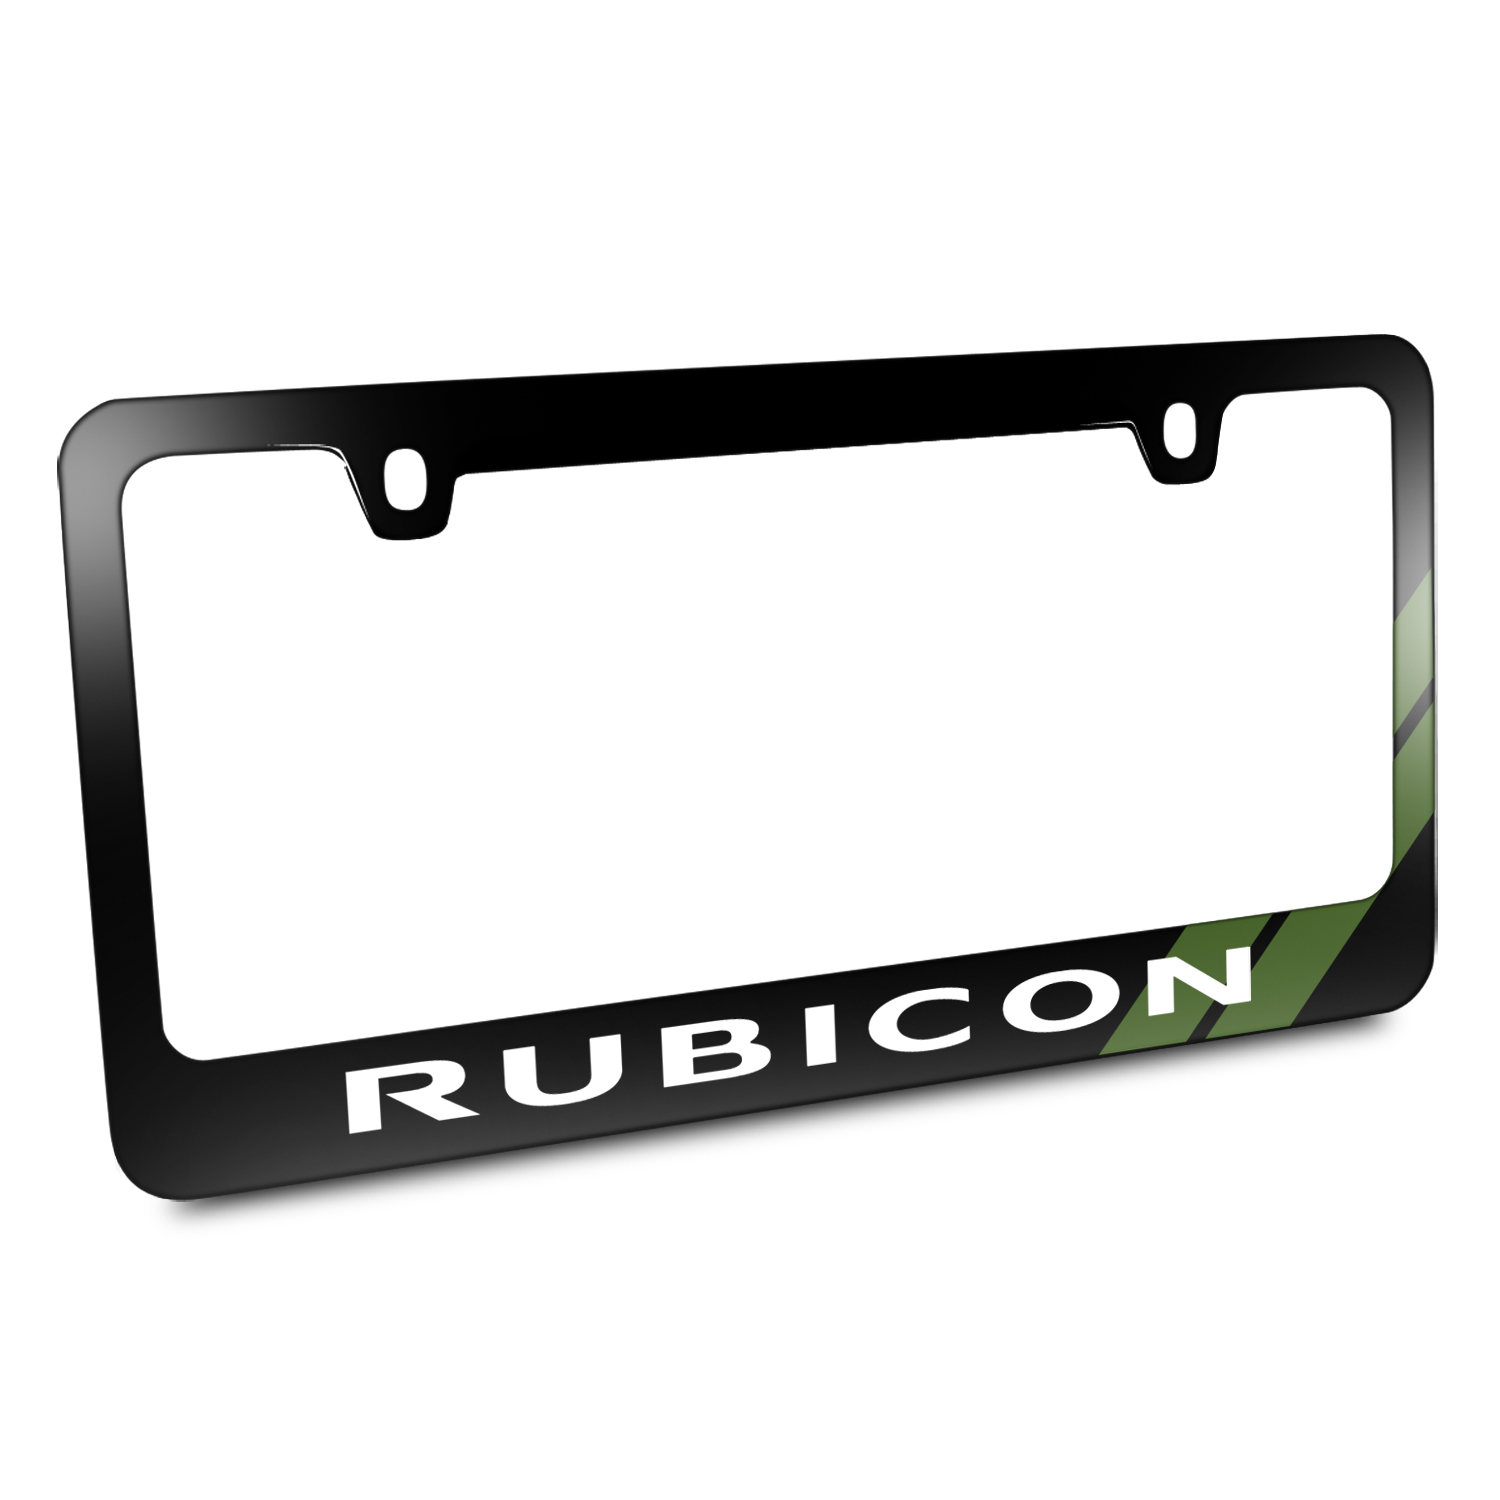 Jeep Rubicon Green Stripe Black Metal License Plate Frame